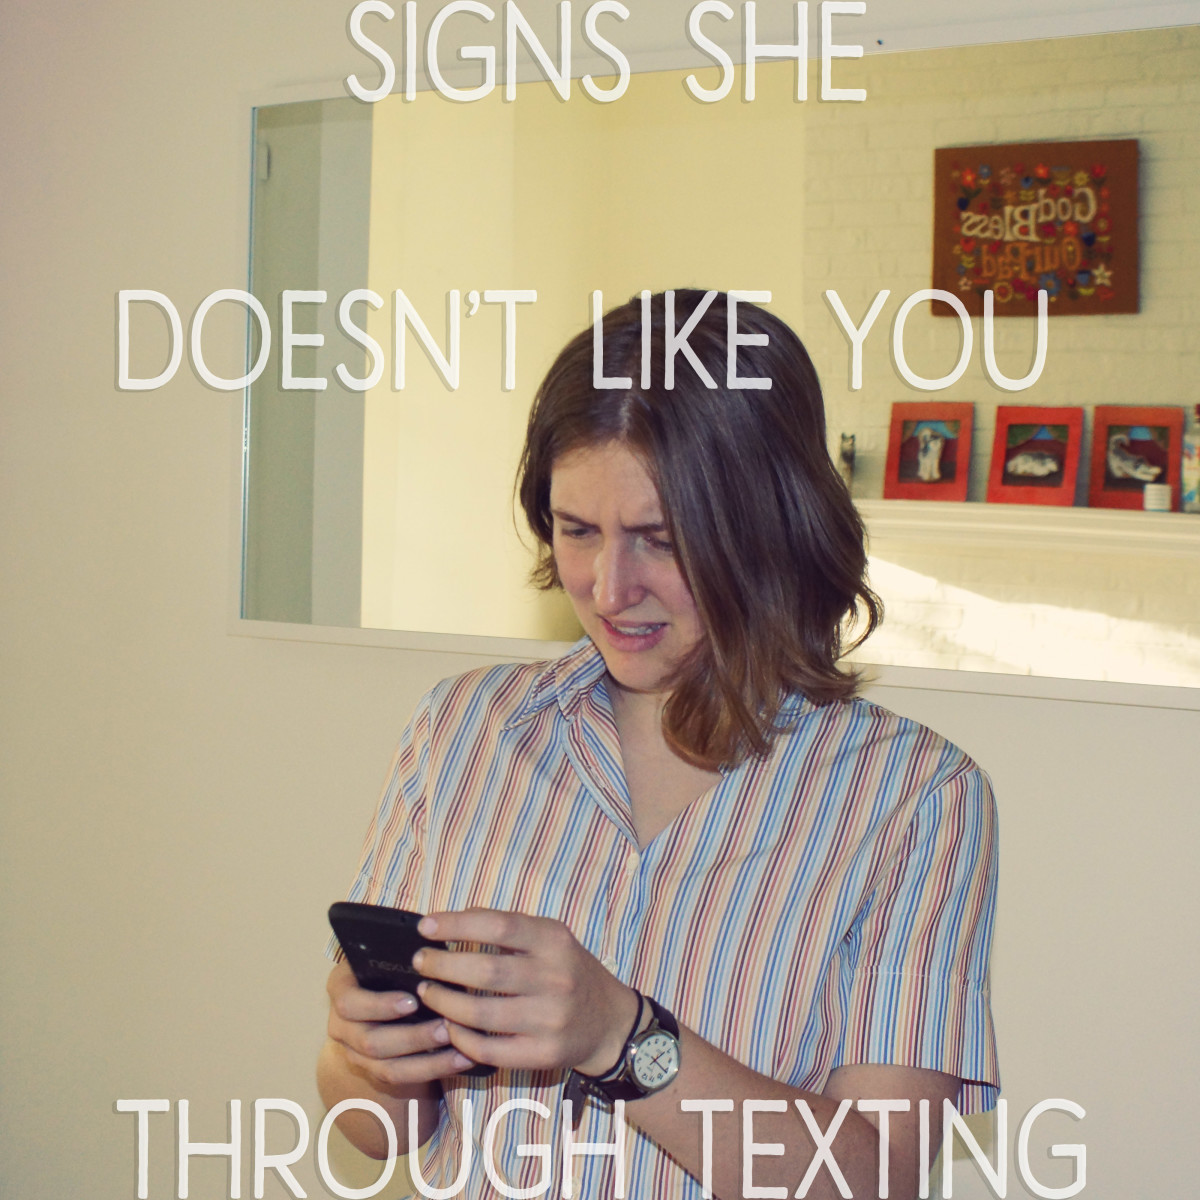 Signs She Doesn't Like You Through Texting